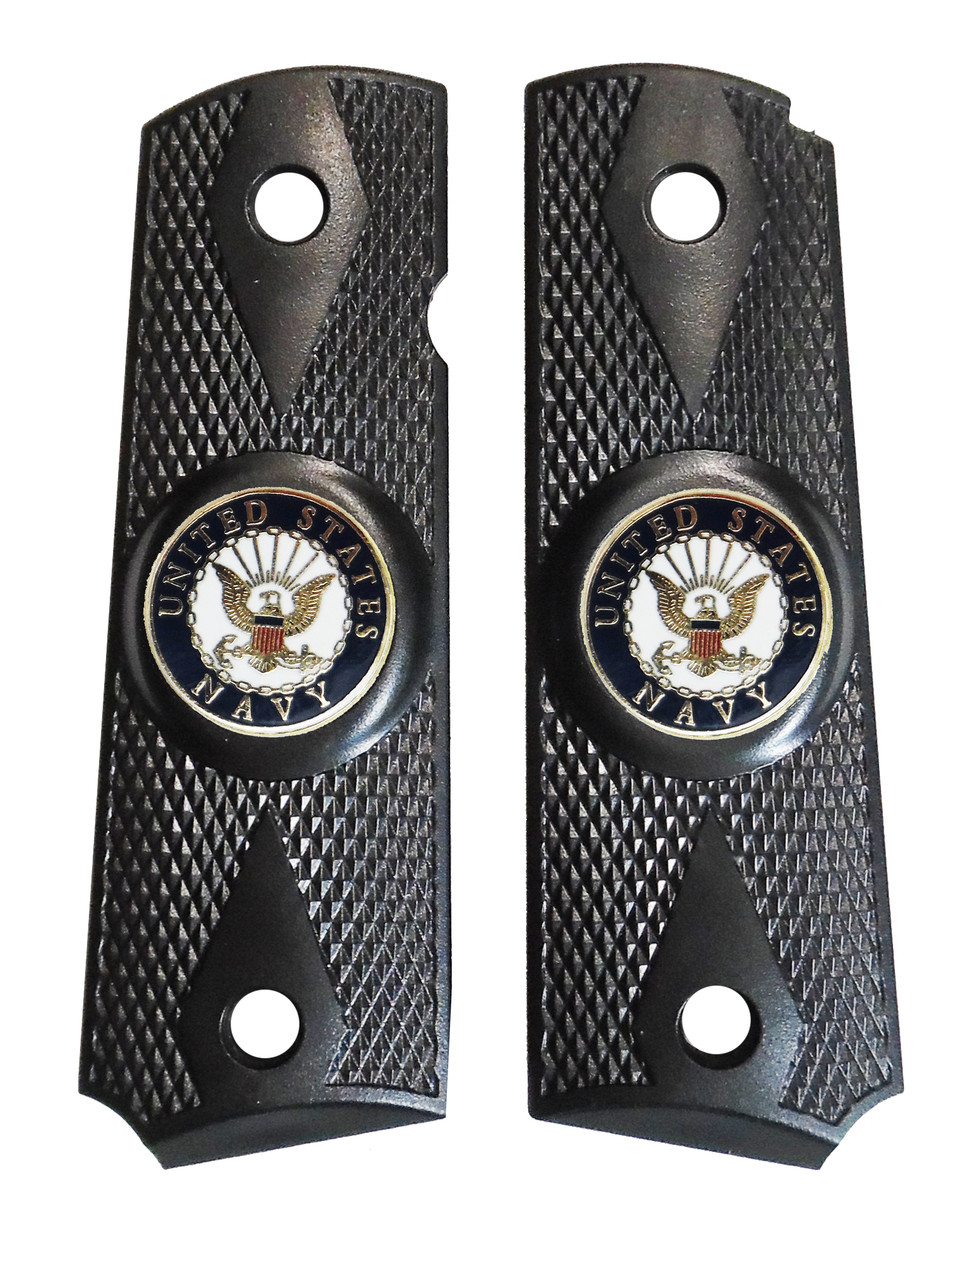 1911 Government Model US Navy Emblems Set In Attractive Ebony Black Polymer Grip G22